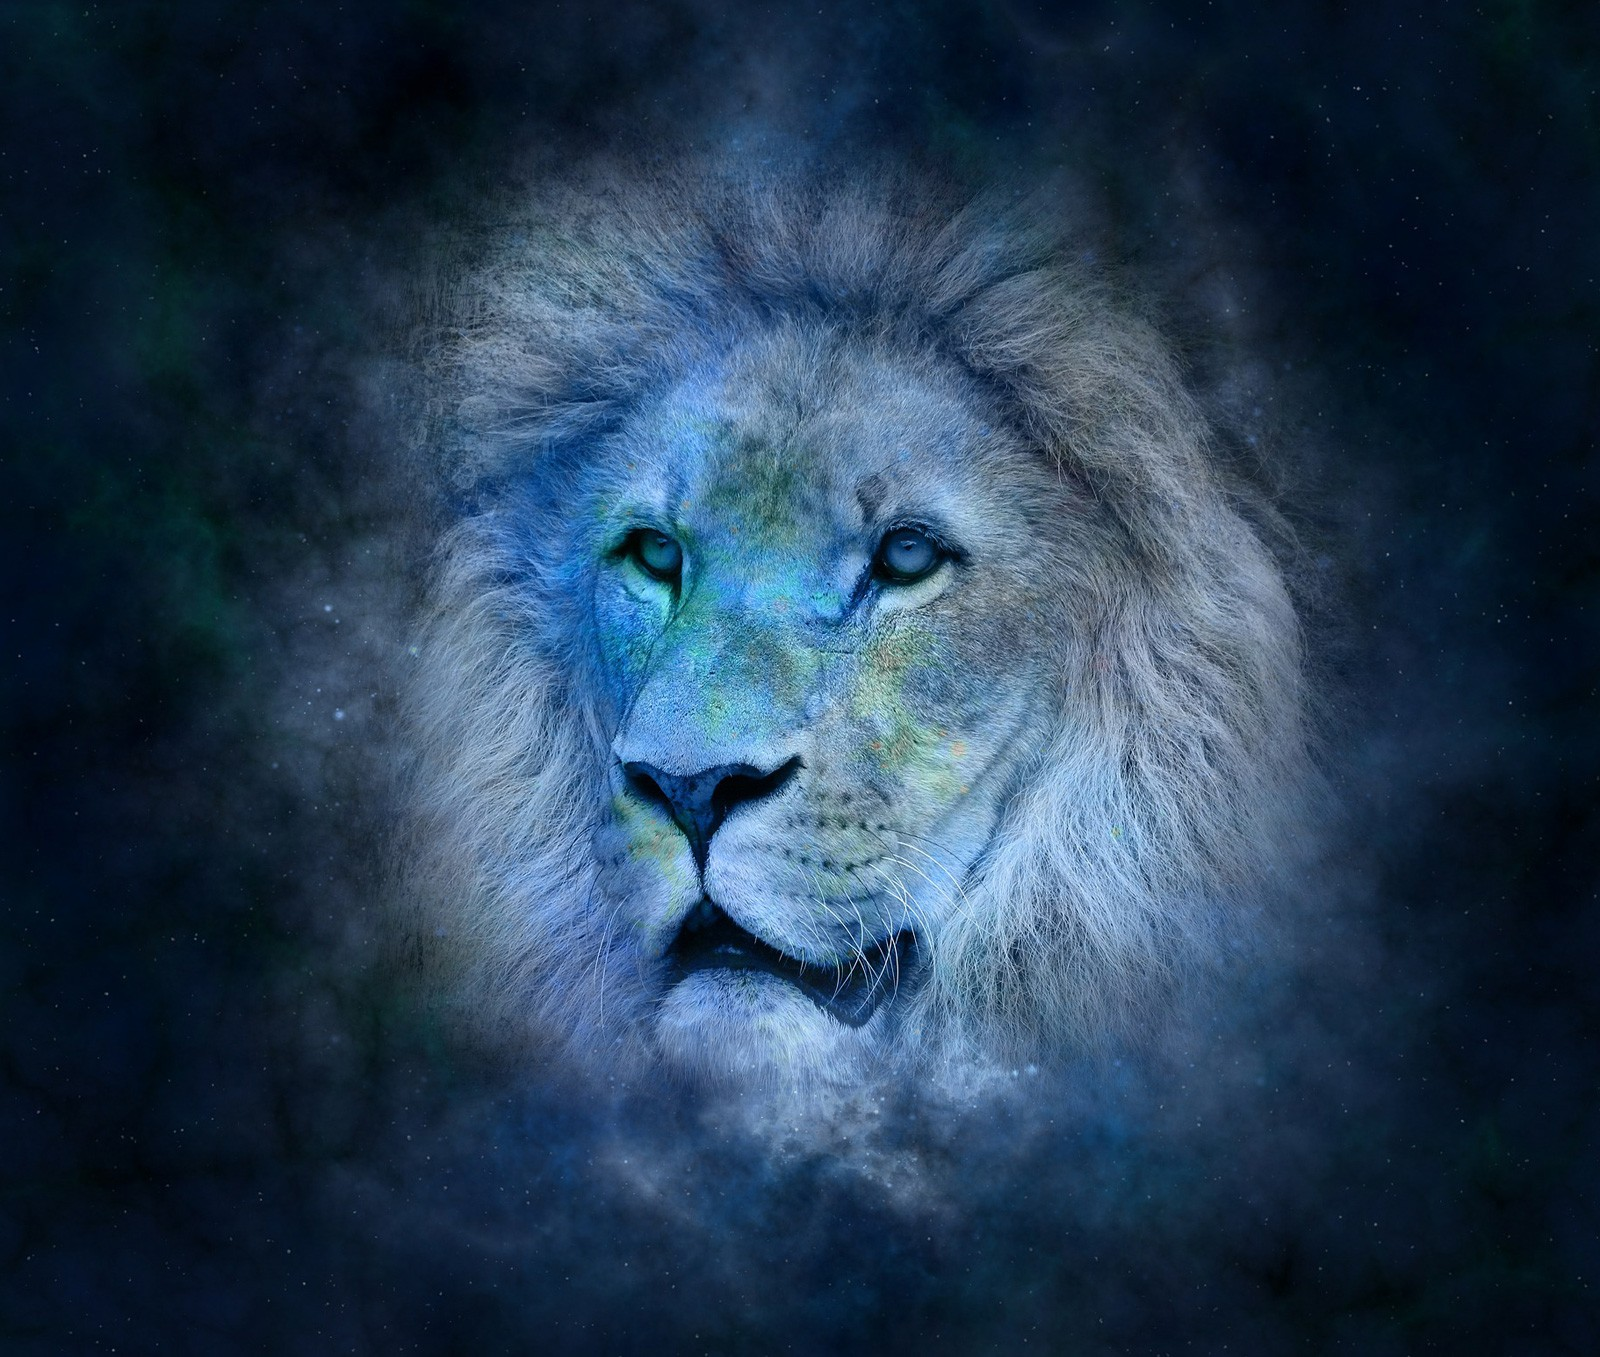 Zodiac Symbols For Leo And Leo Sign Meaning On Whats Your Sign